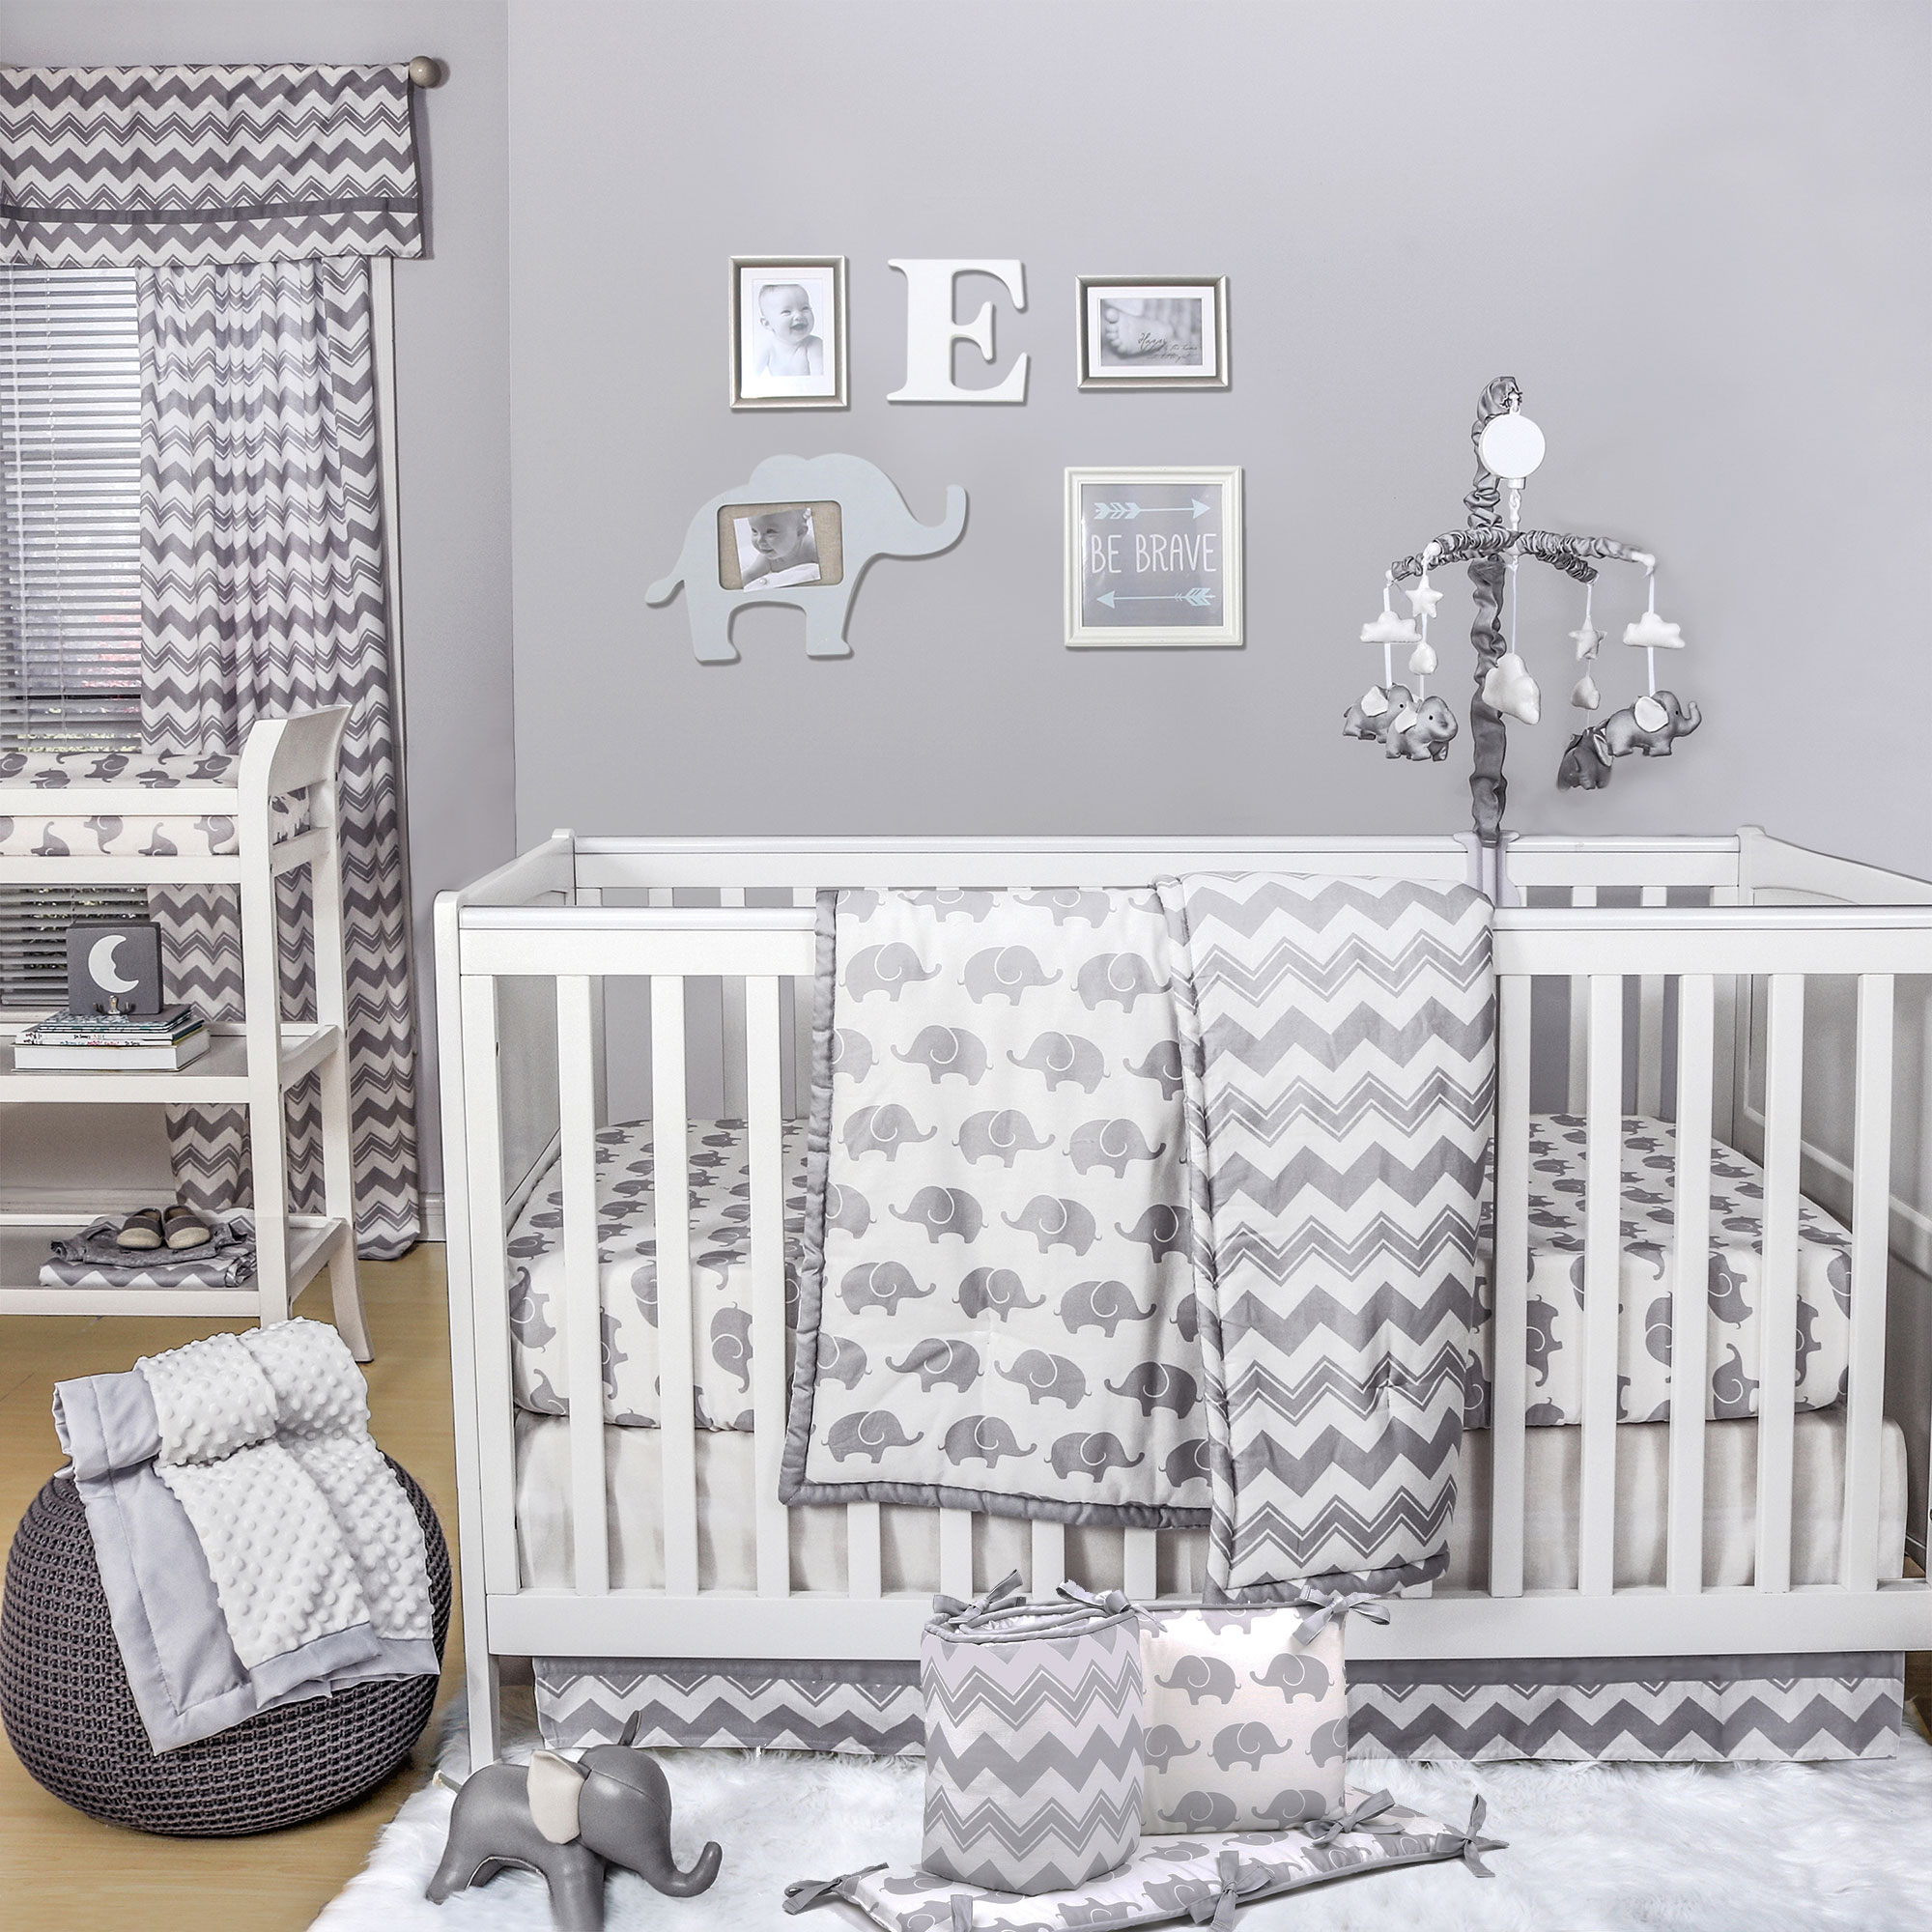 The Peanut Shell 5 Piece Baby Crib Bedding Set - Grey Zig Zag and Elephant Prints - 100% Cotton Quilt, Bumper, Dust Ruffle, Fitted Sheet, and Mobile